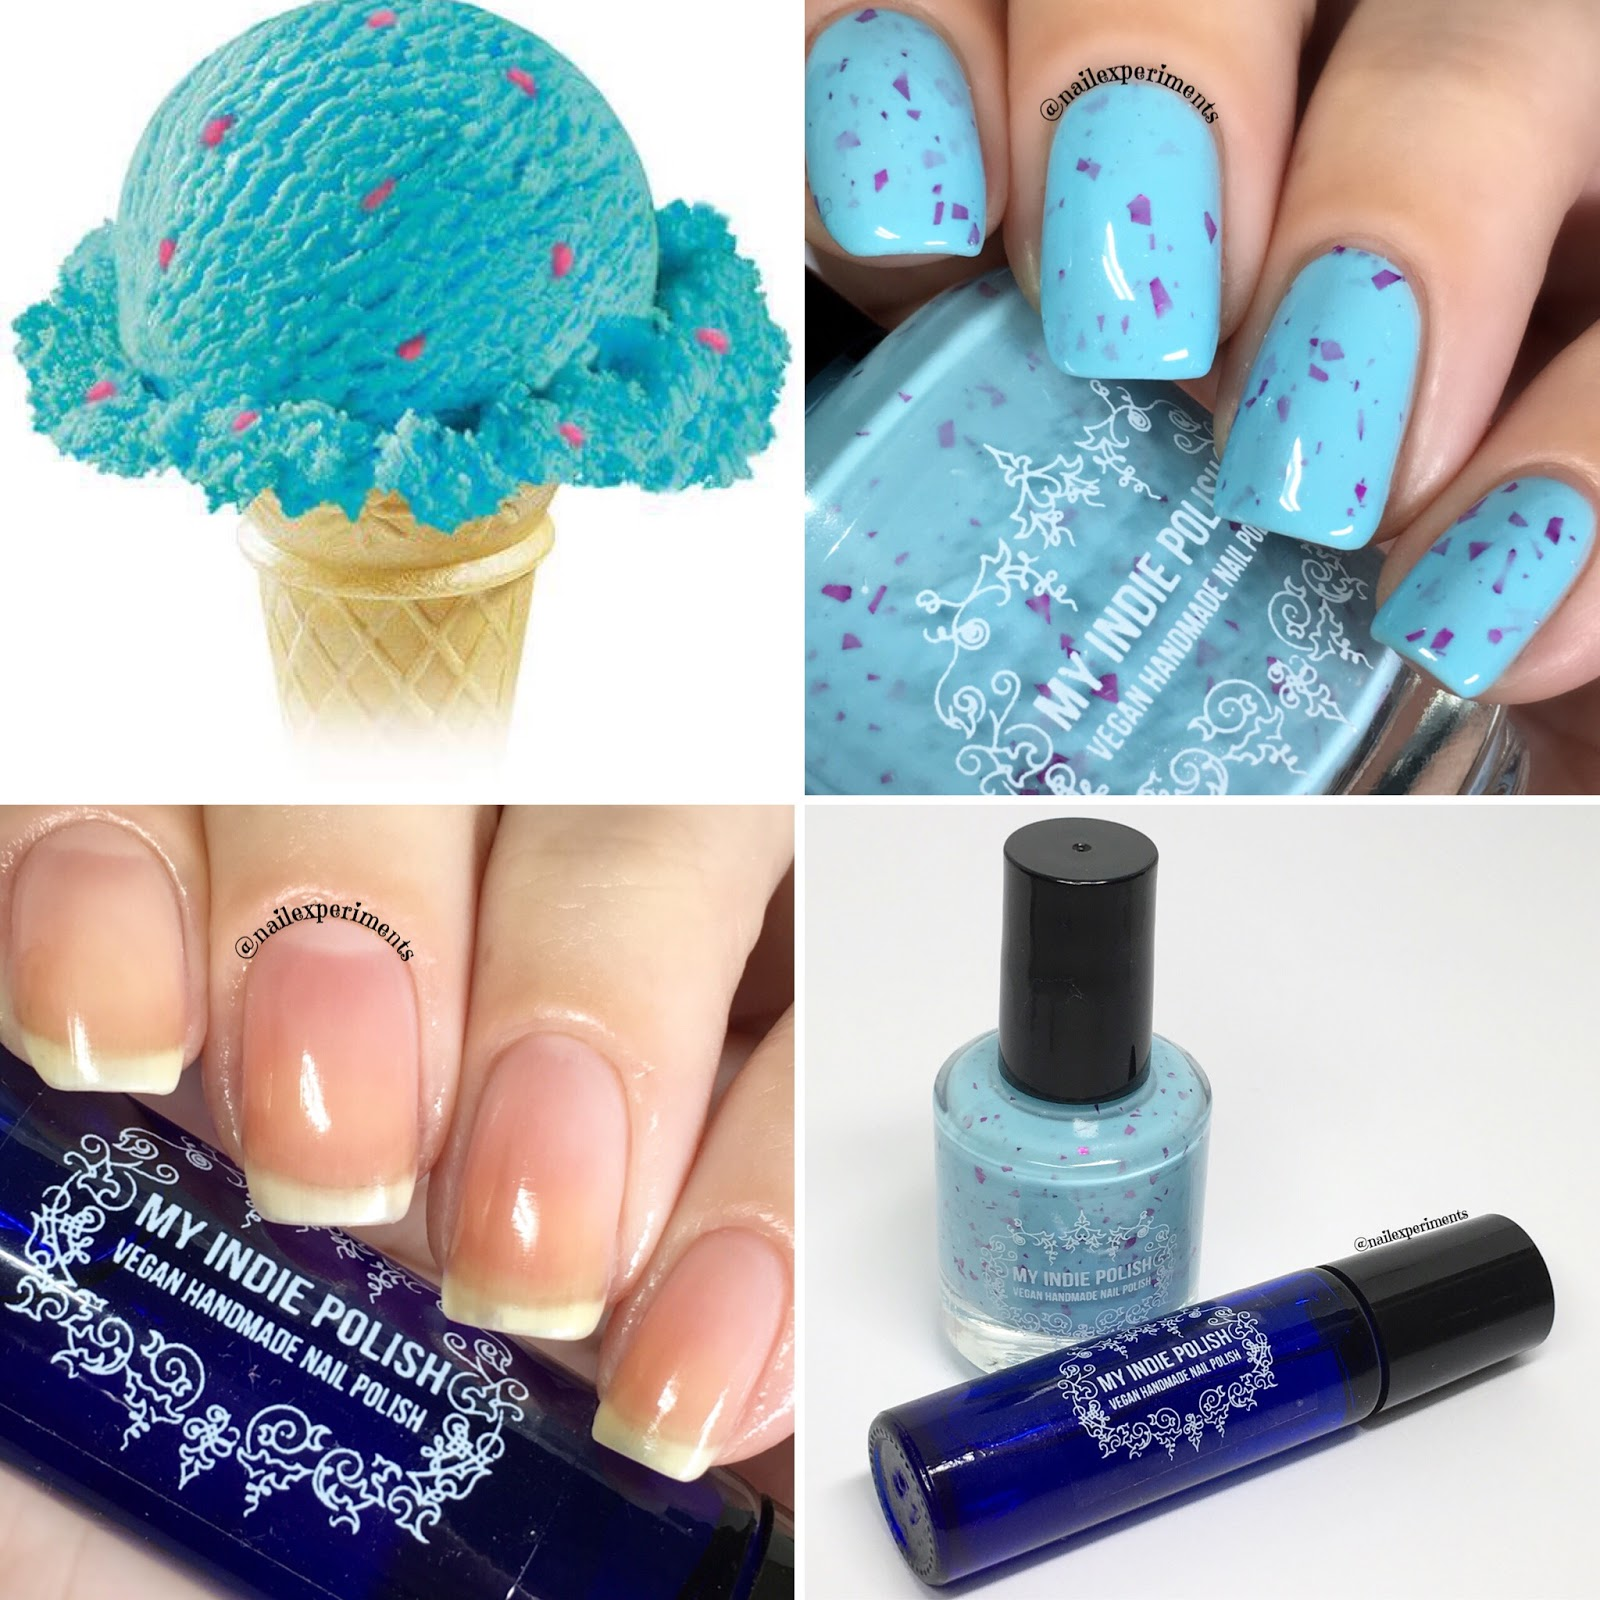 Nail Experiments: My Indie Polish Bubblegum Ice Cream | February ...